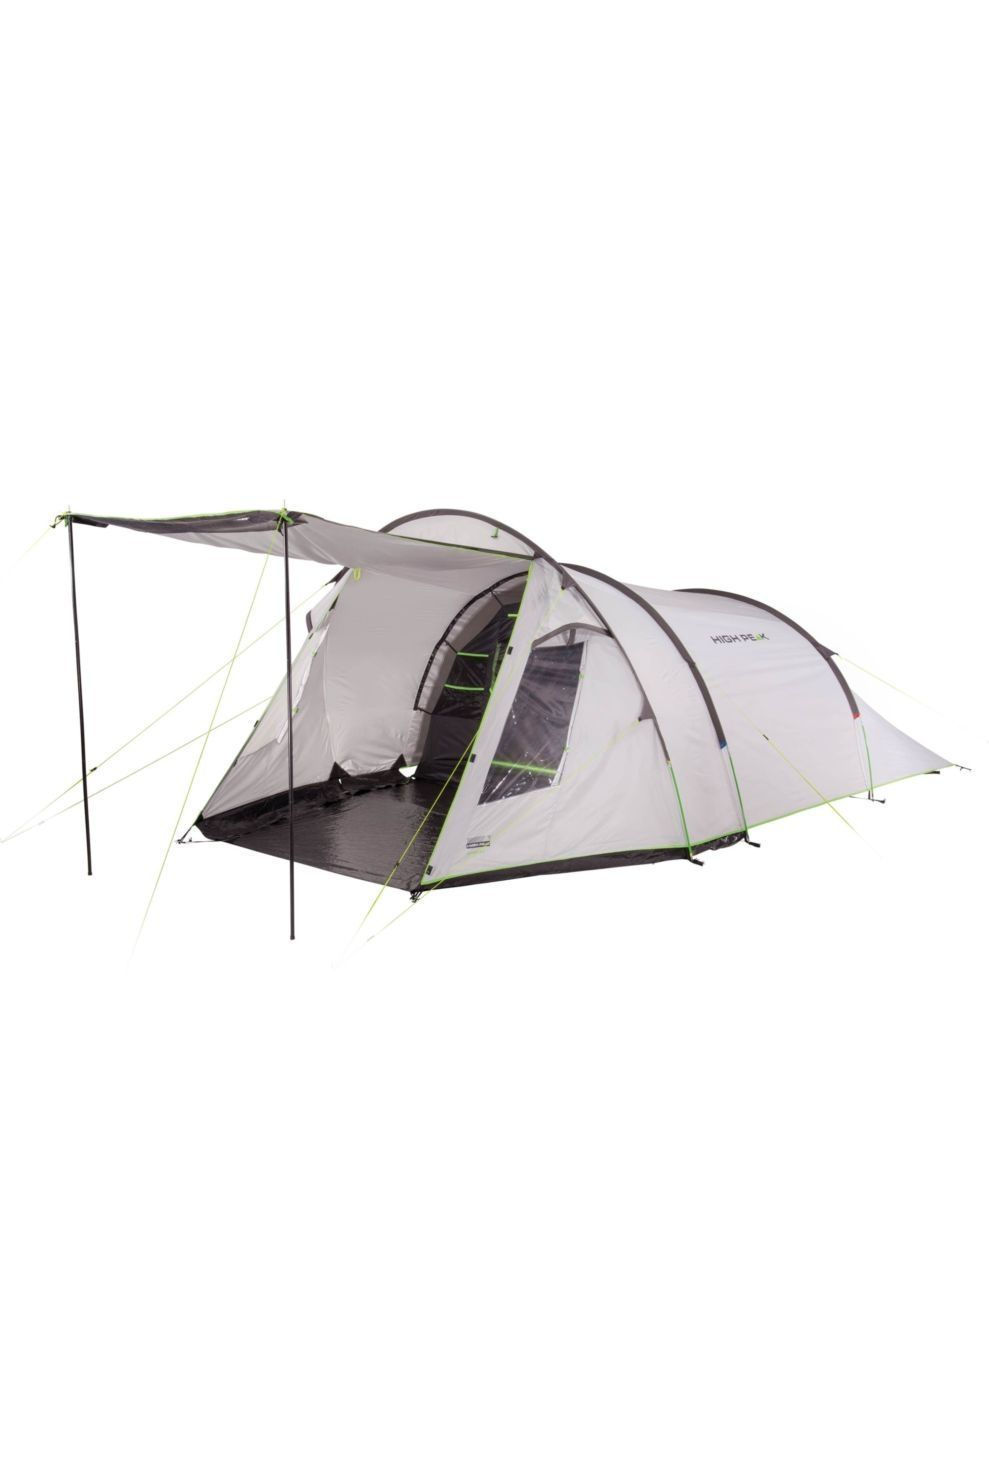 High Peak Tent Sorrent 4.0 - Grijs